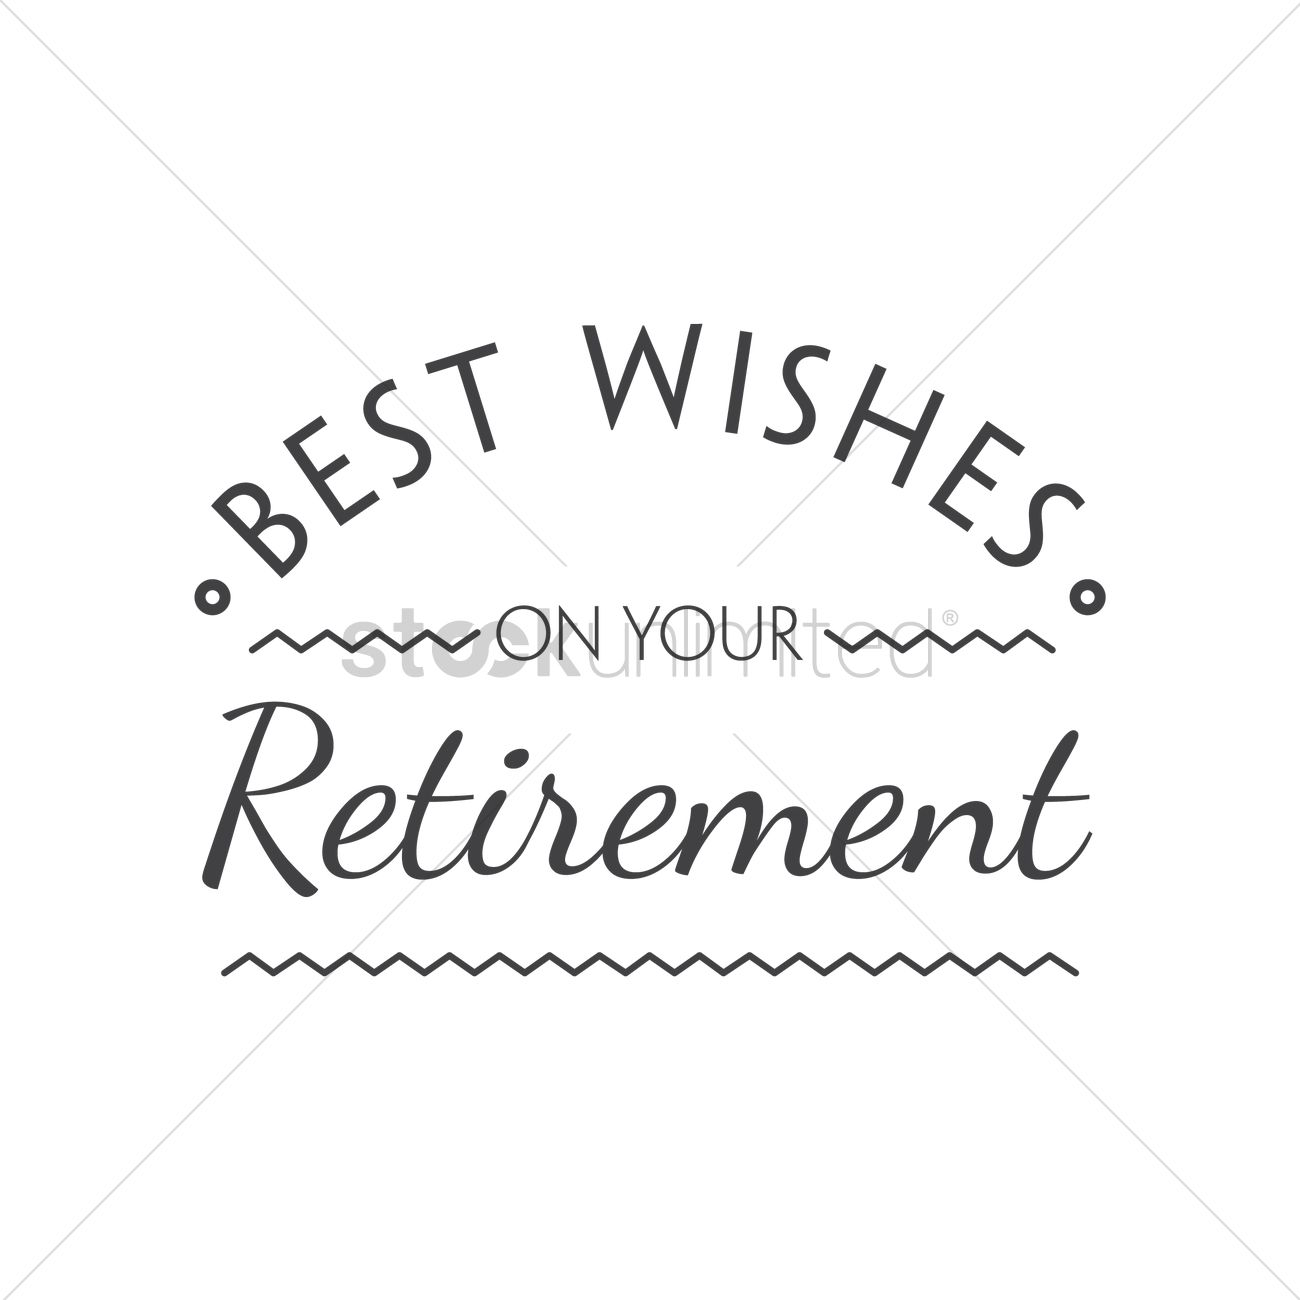 Best wishes on your retirement vector image 1791251 stockunlimited best wishes on your retirement vector graphic kristyandbryce Images